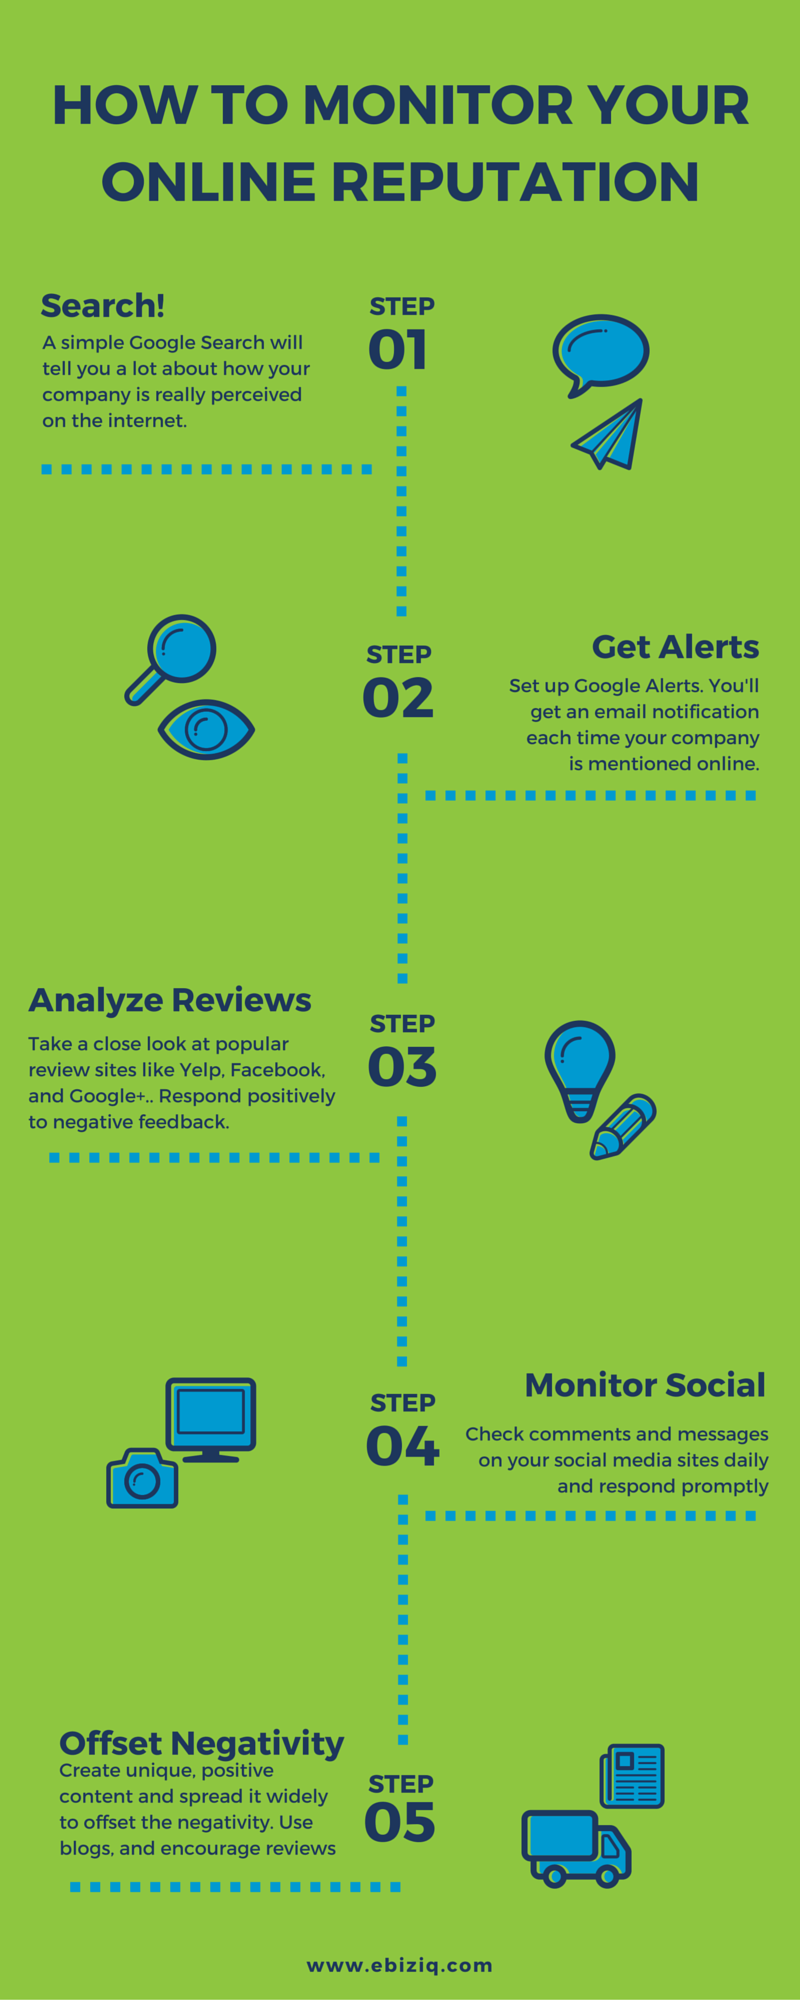 5 Ways to Monitor